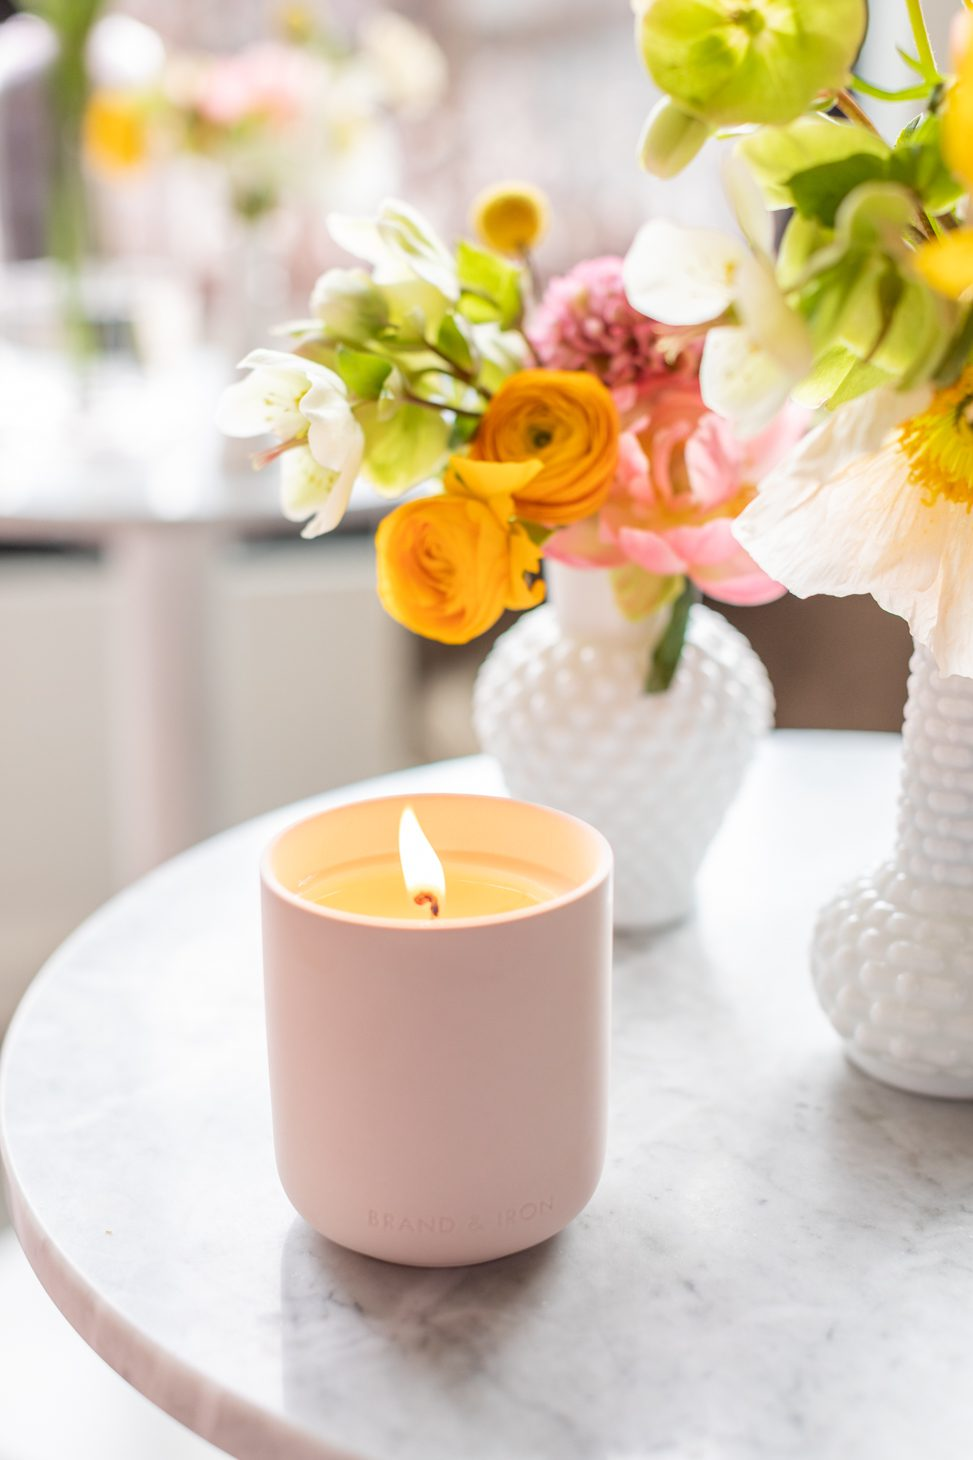 Summer 2021 Jilly Box Add Ons: Brand & Iron Candle